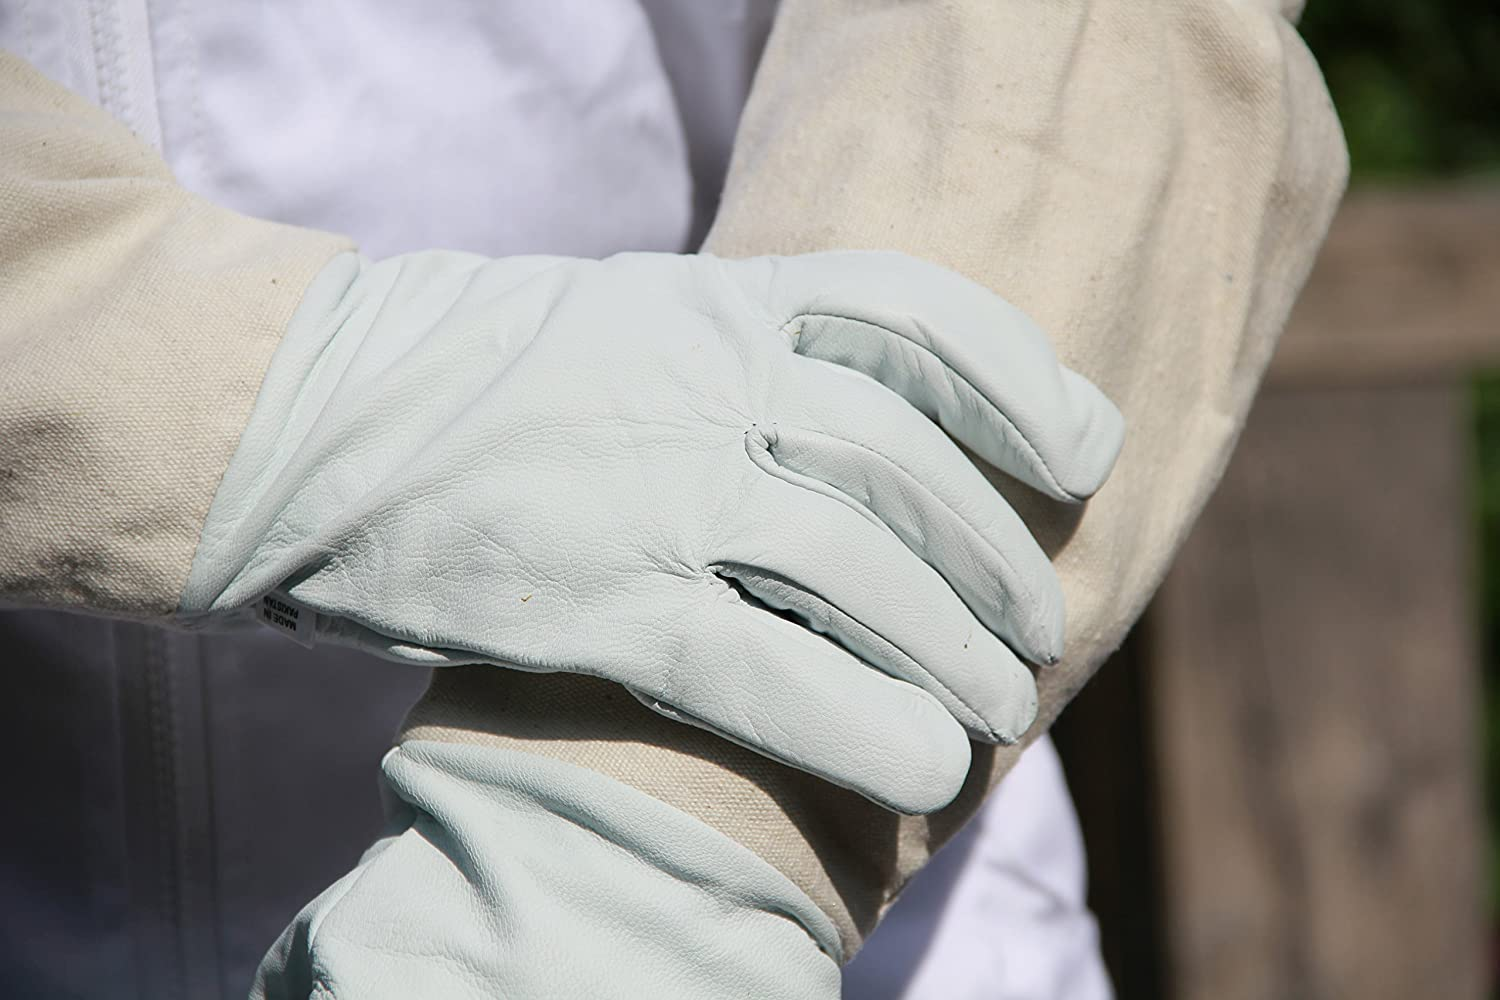 Beekeeping Gloves - Soft White Goats Leather with Cotton Gauntlets All Sizes (S) Flyingstart